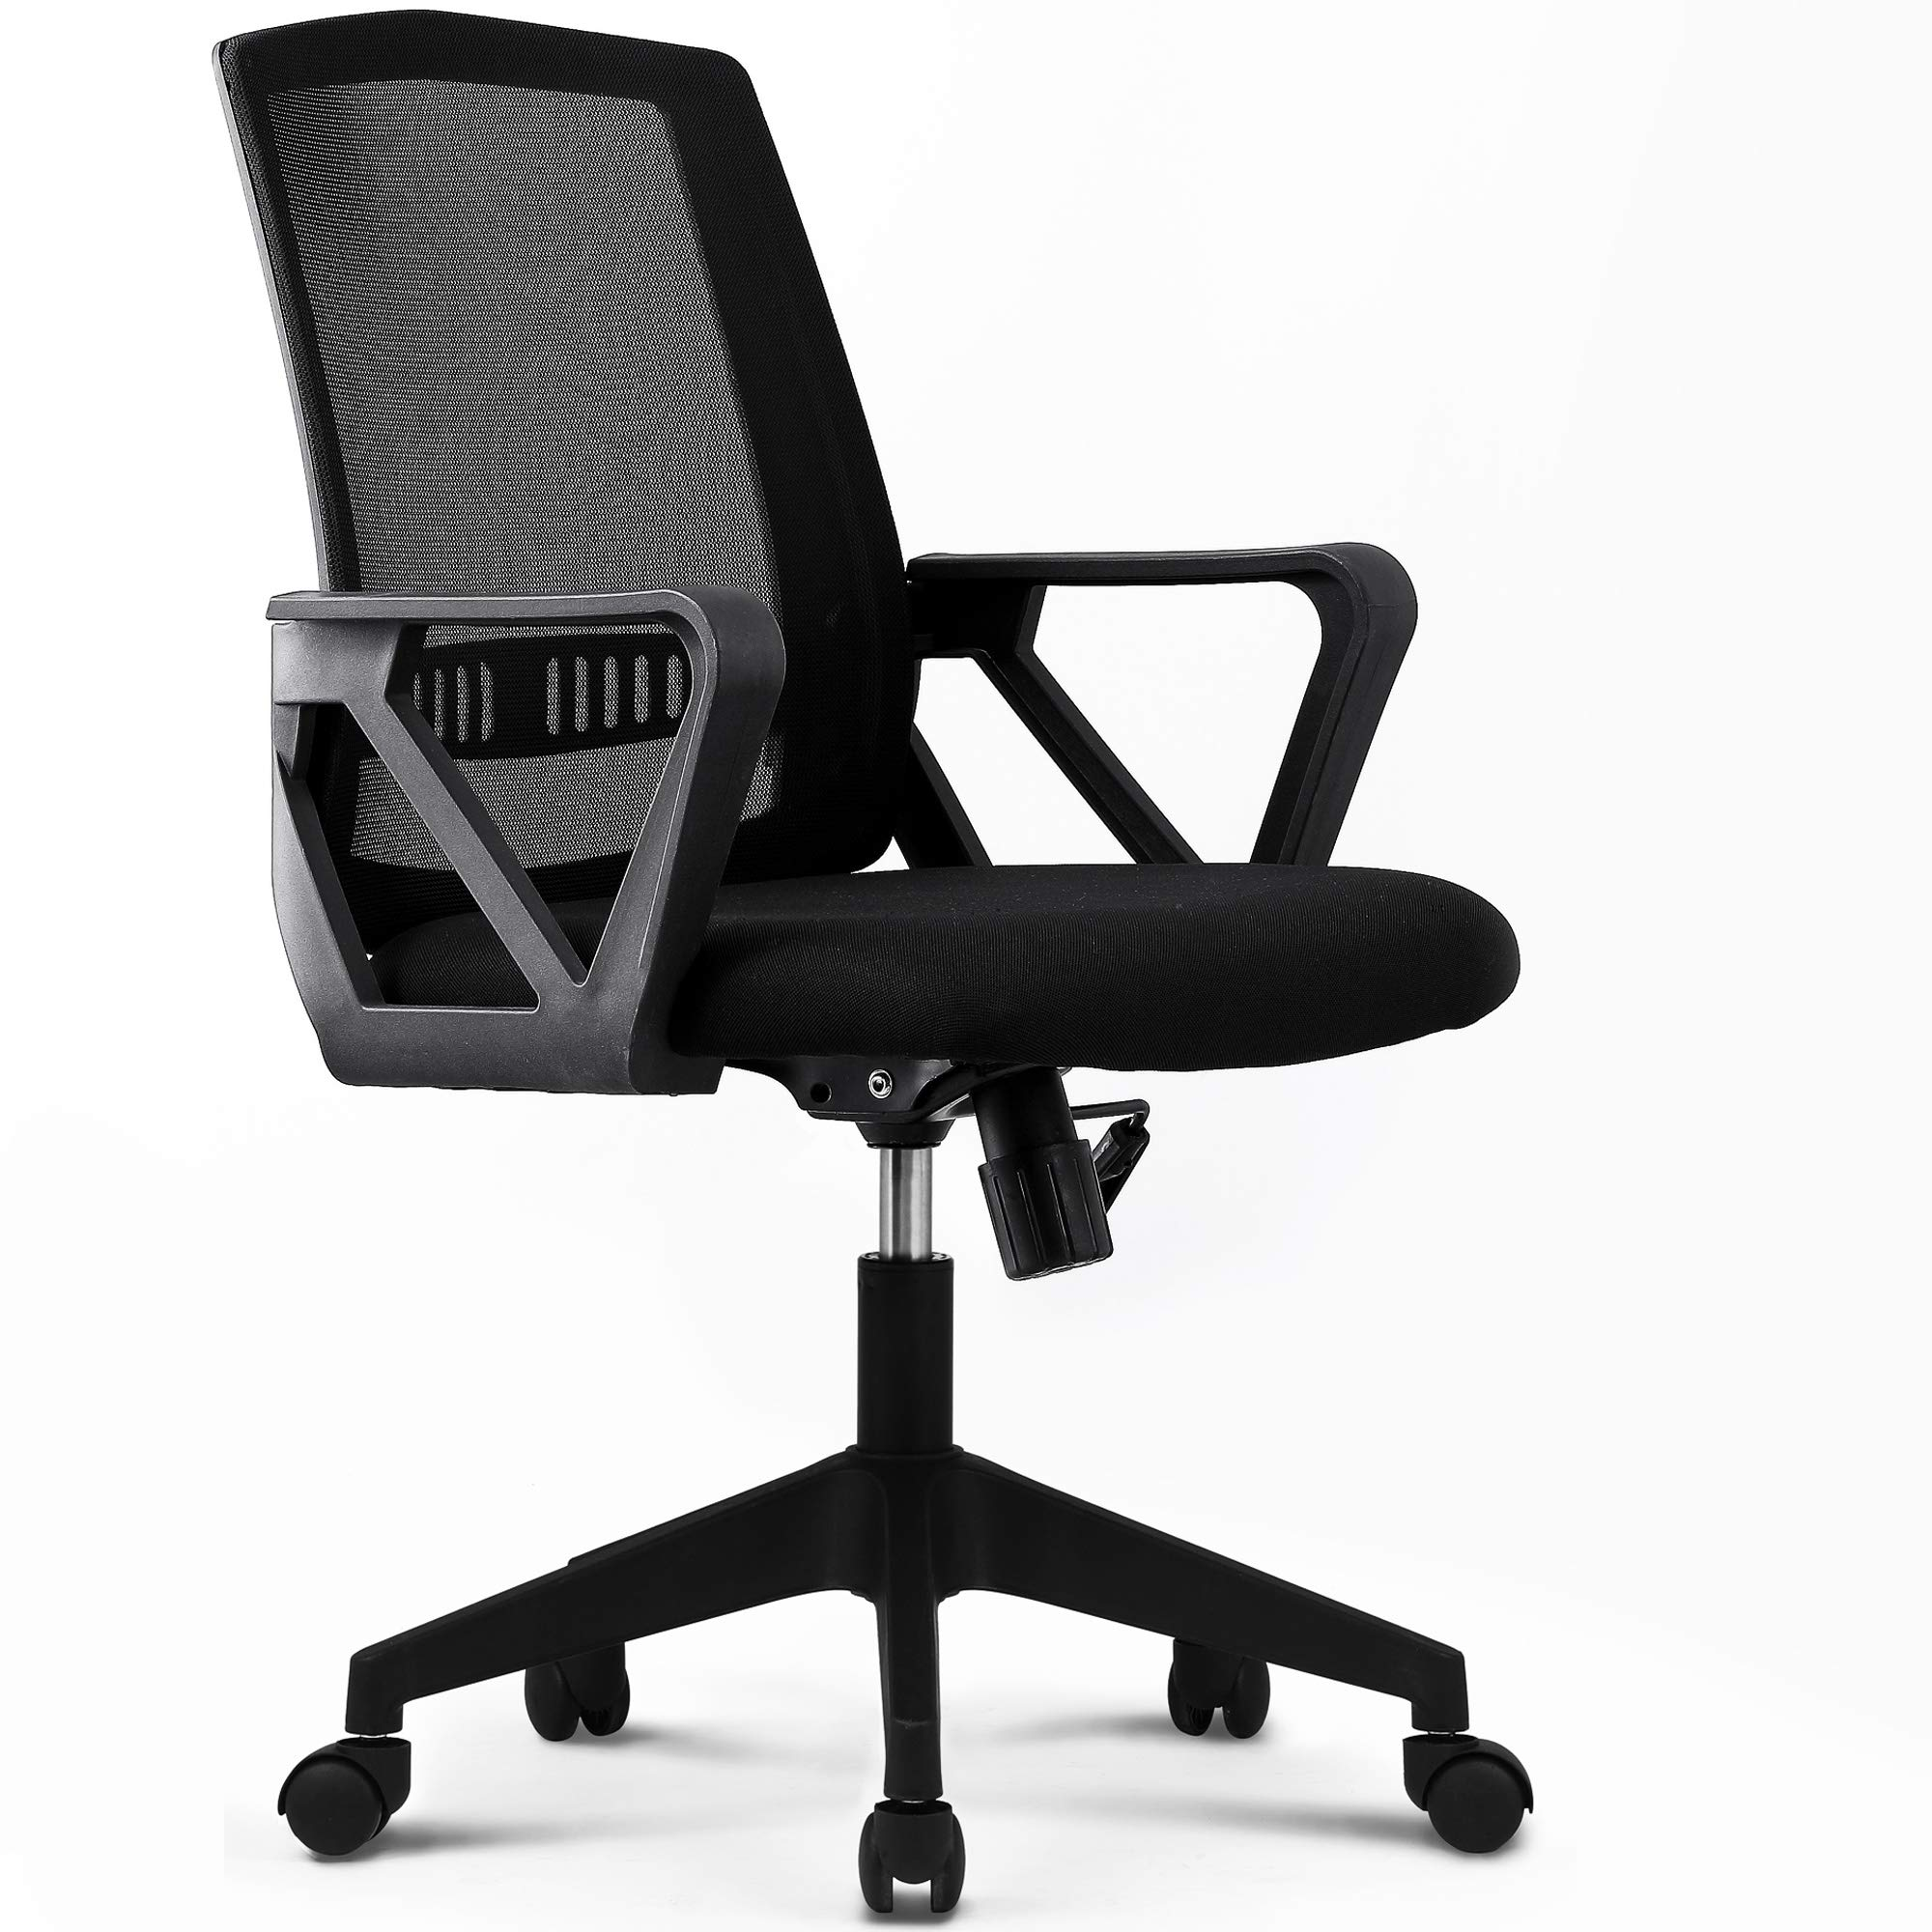 NEO CHAIR Office Chair Computer Desk Chair Gaming - Bulk Business Executive Ergonomic Back Cushion Lumbar Support Chairs Wheels Black Mesh Racing Seat Adjustable Swivel Rolling Diagonal Armrests